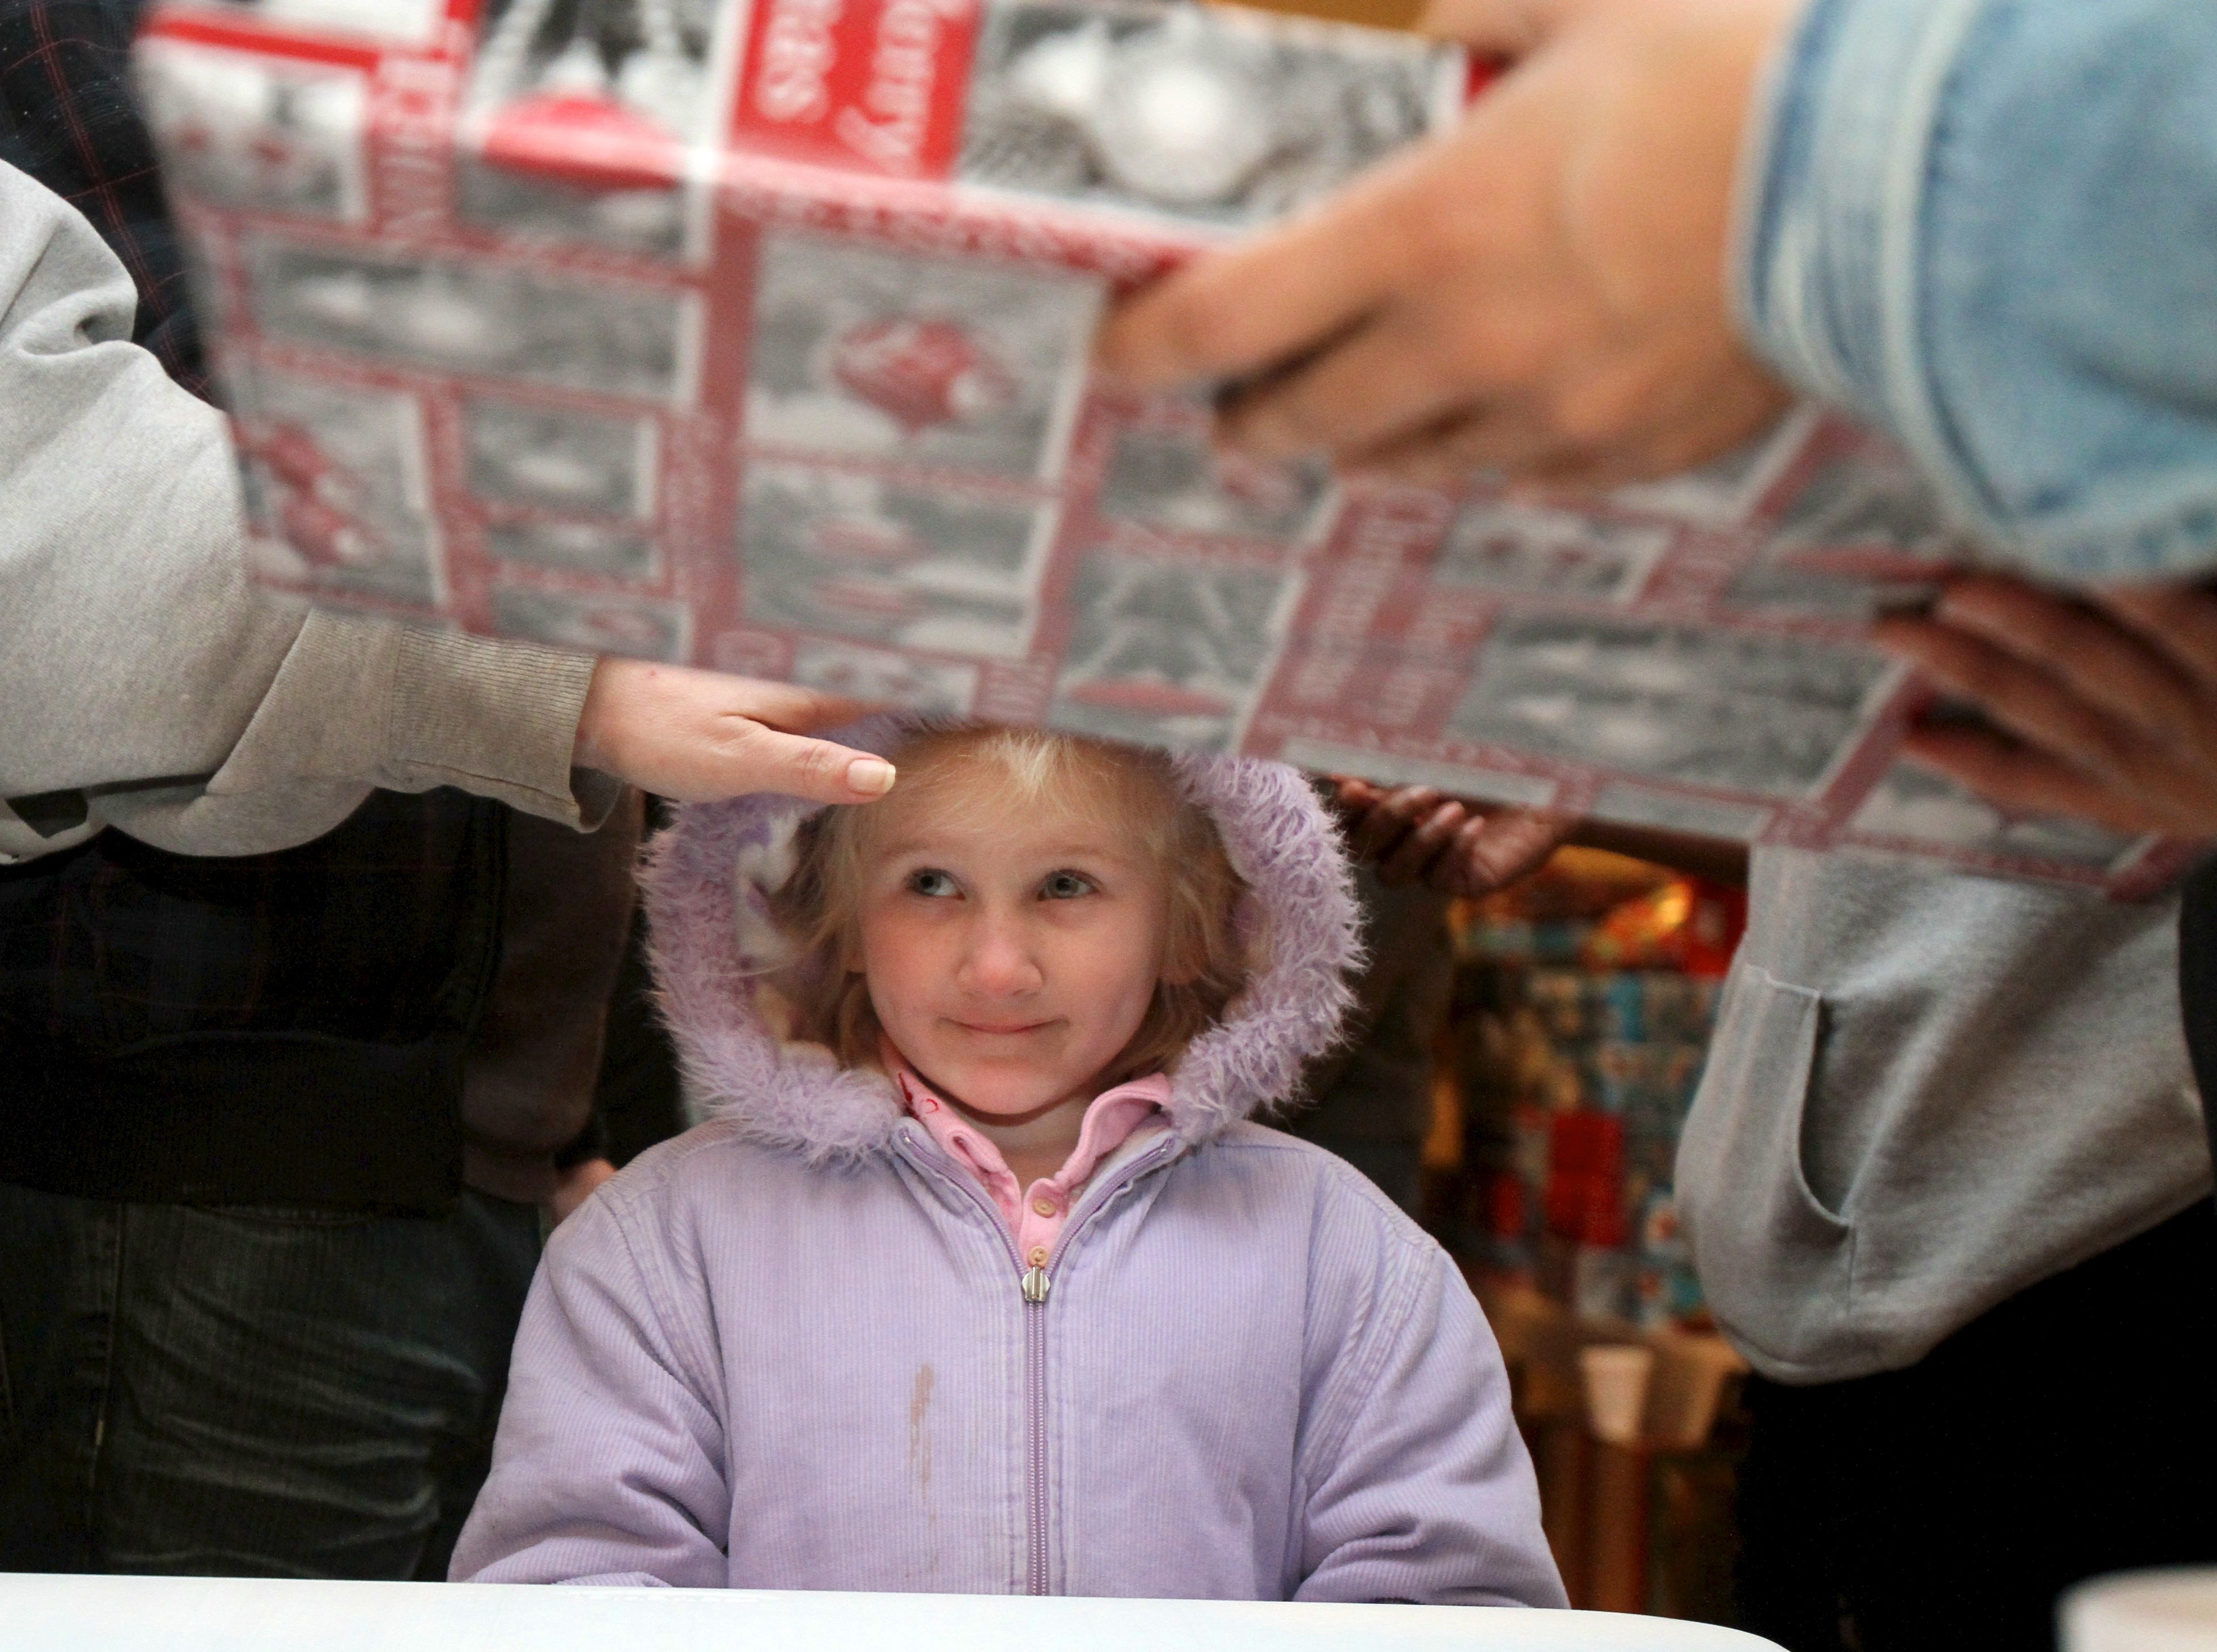 Abigail Bailey, 5, waits to receive a present on Sunday, December 18, 2011 at Overcoming Believers Church. More than 2000 toys were given out by the church to families for Christmas.